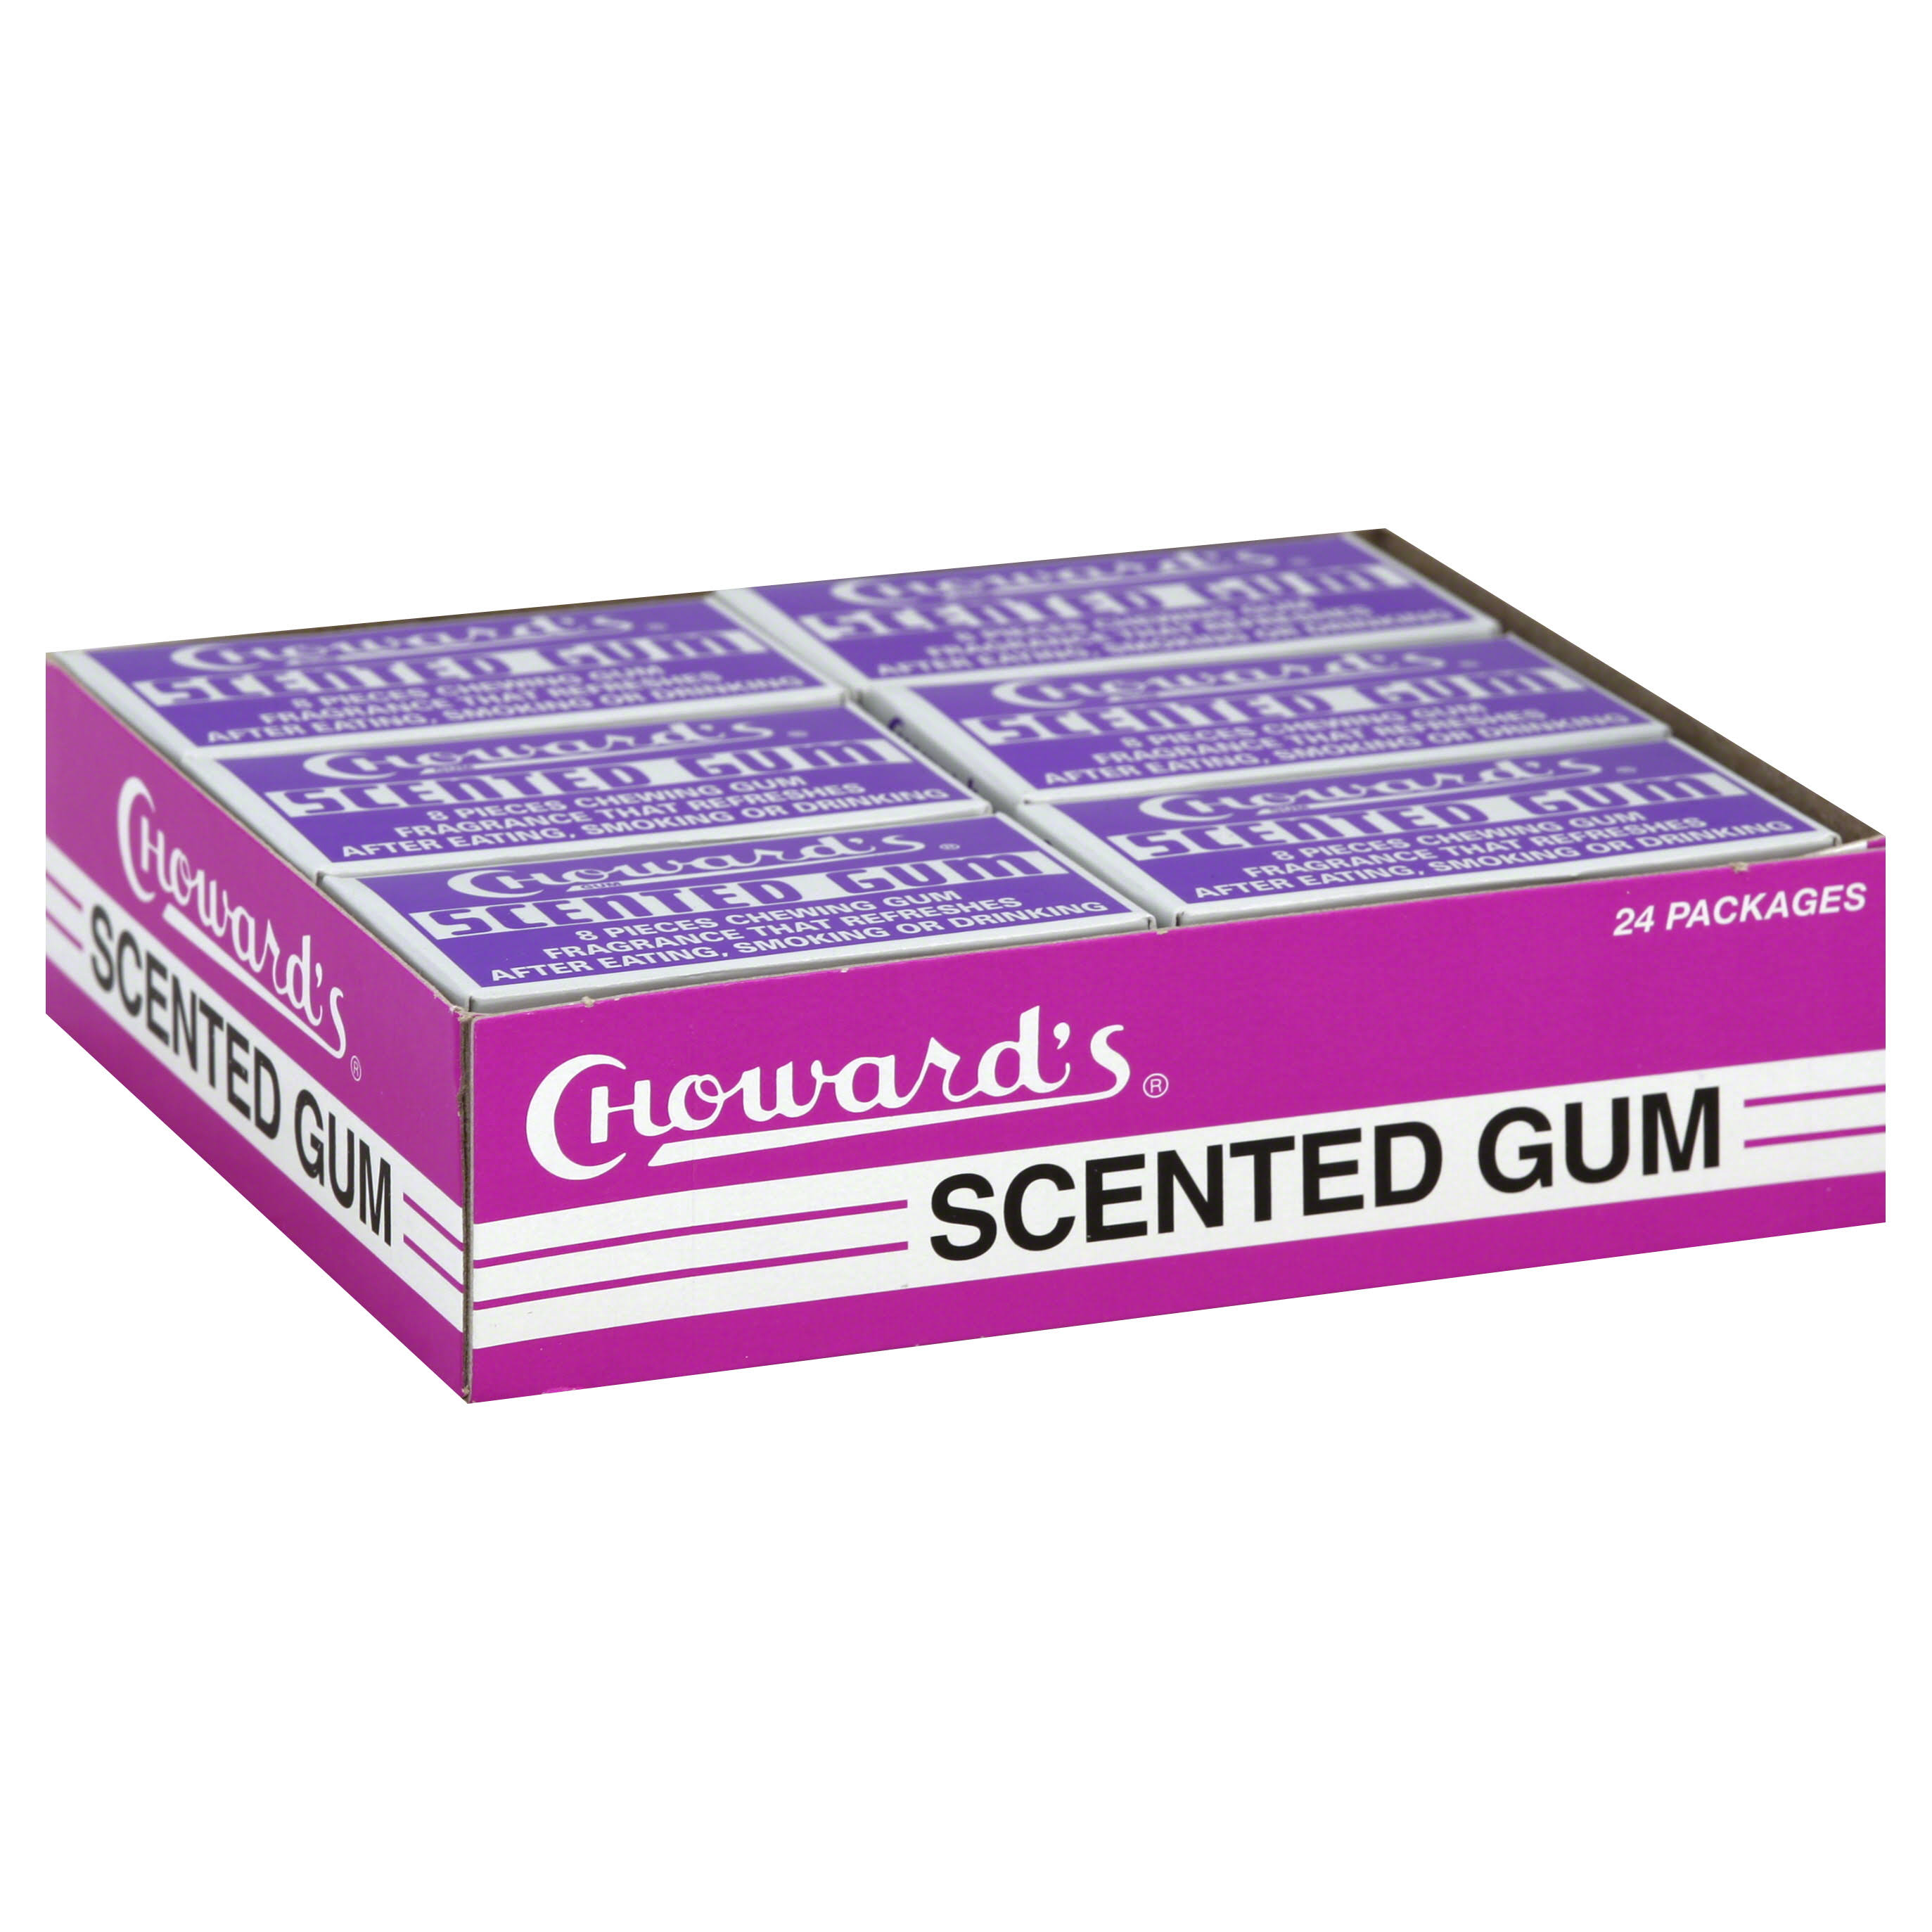 Chowards Scented Chewing Gum - 8pcs